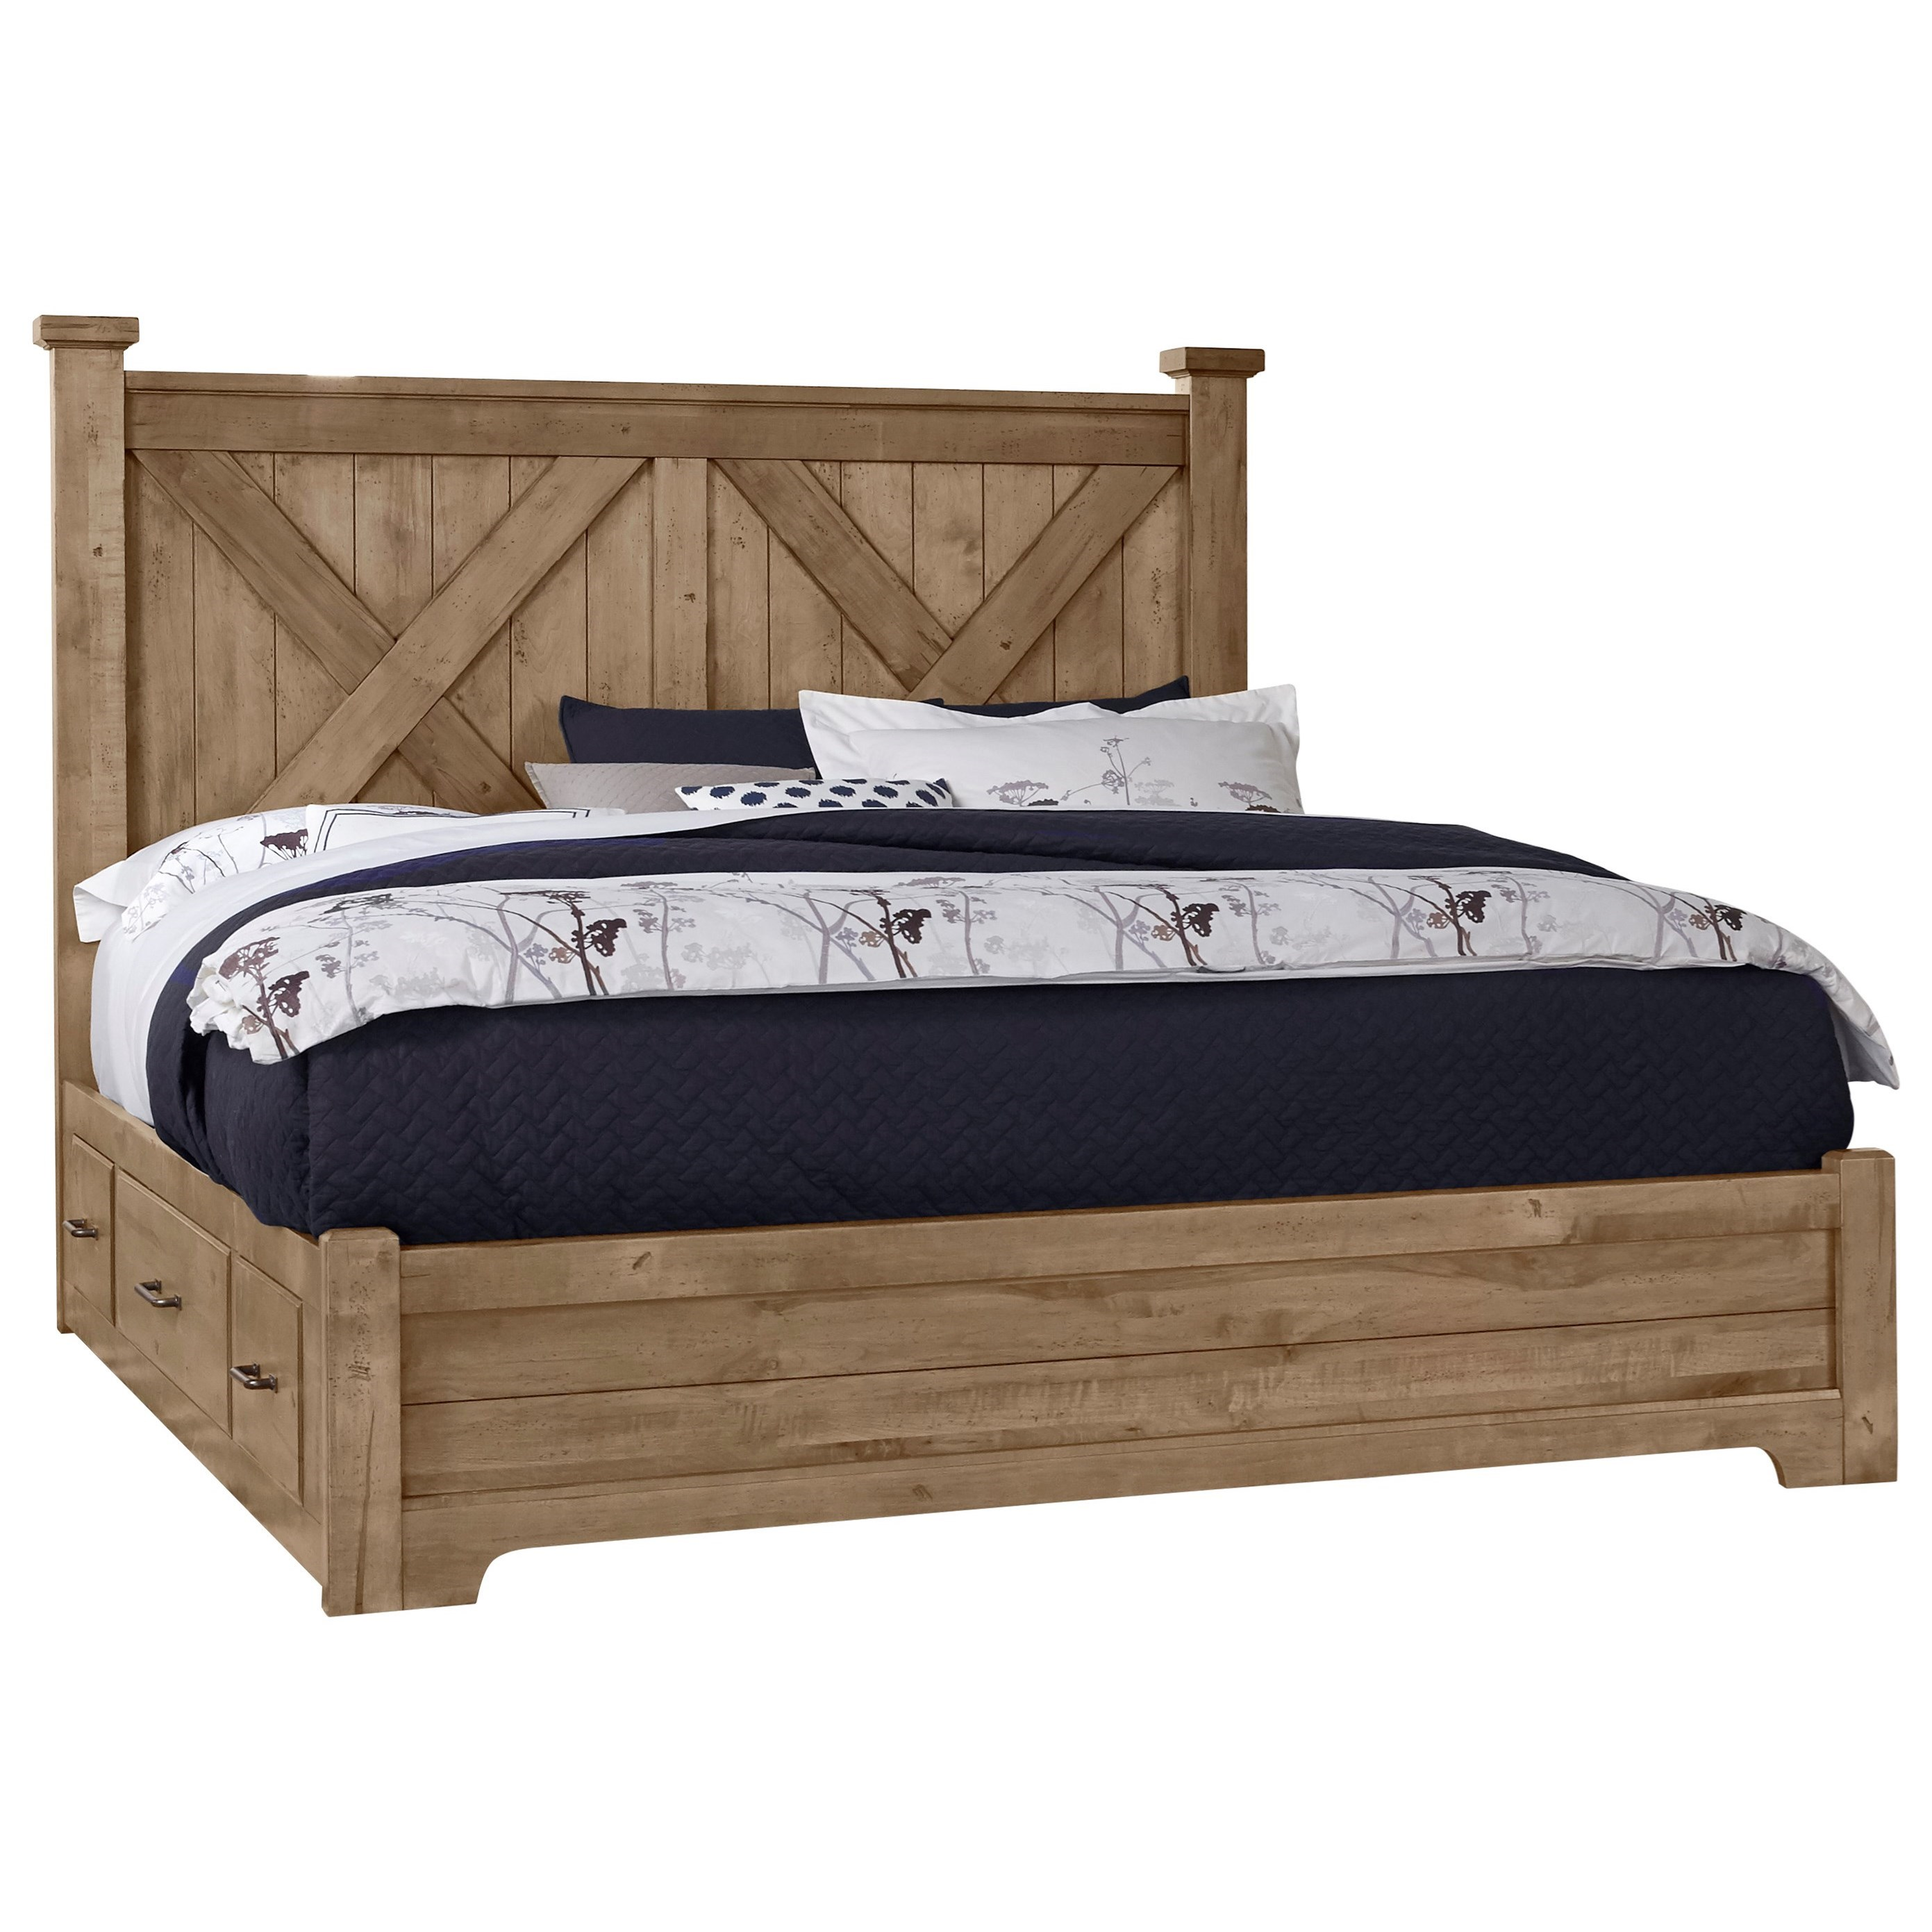 Queen X Bed with Side Storage